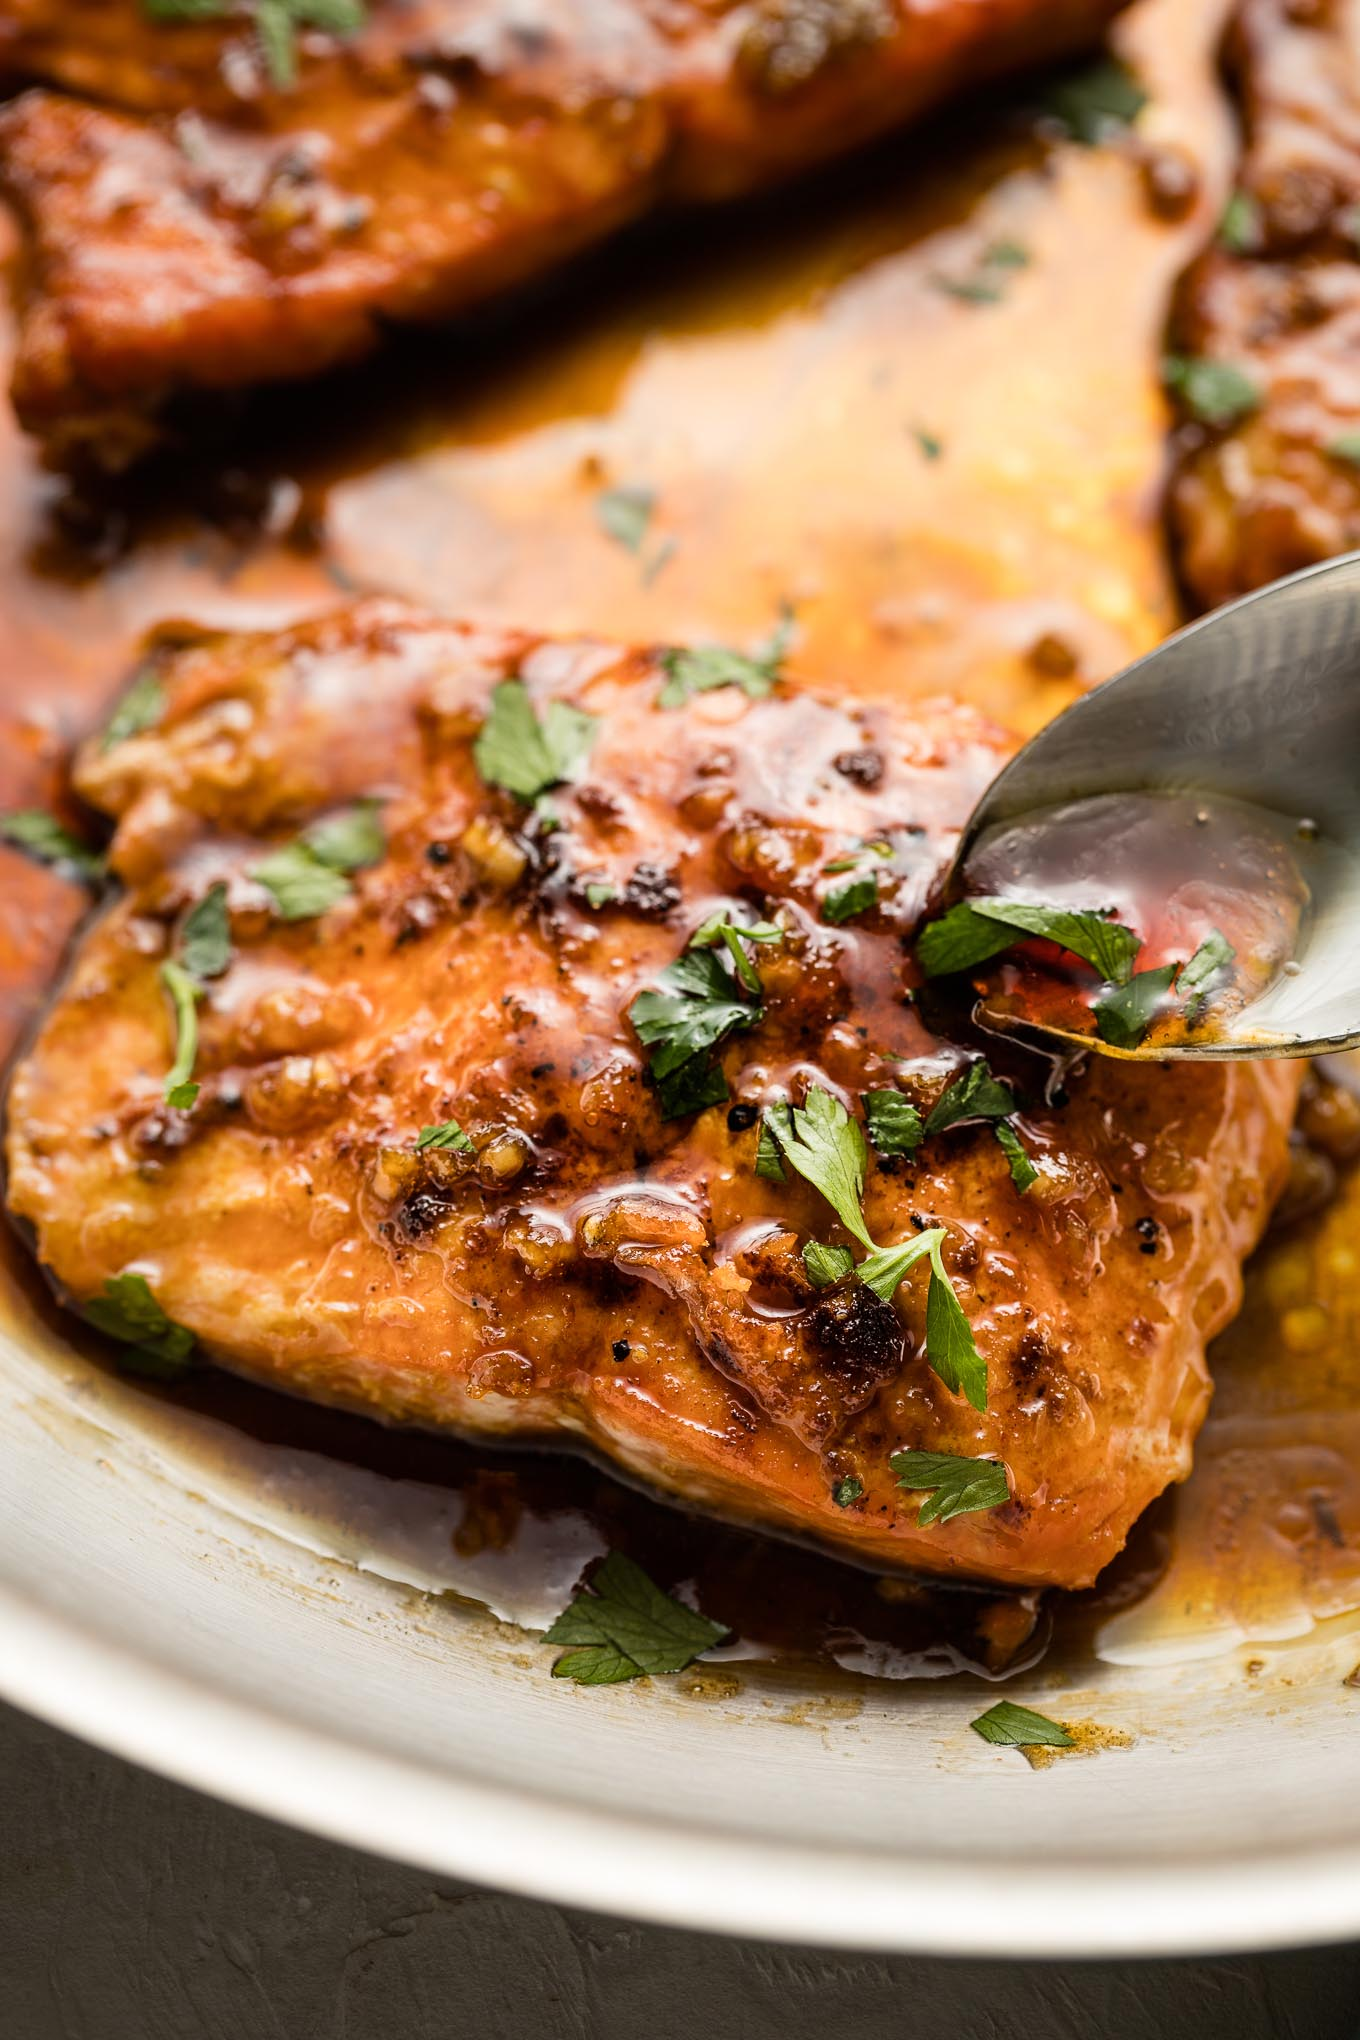 Spoon pouring sauce over cooked salmon filets.